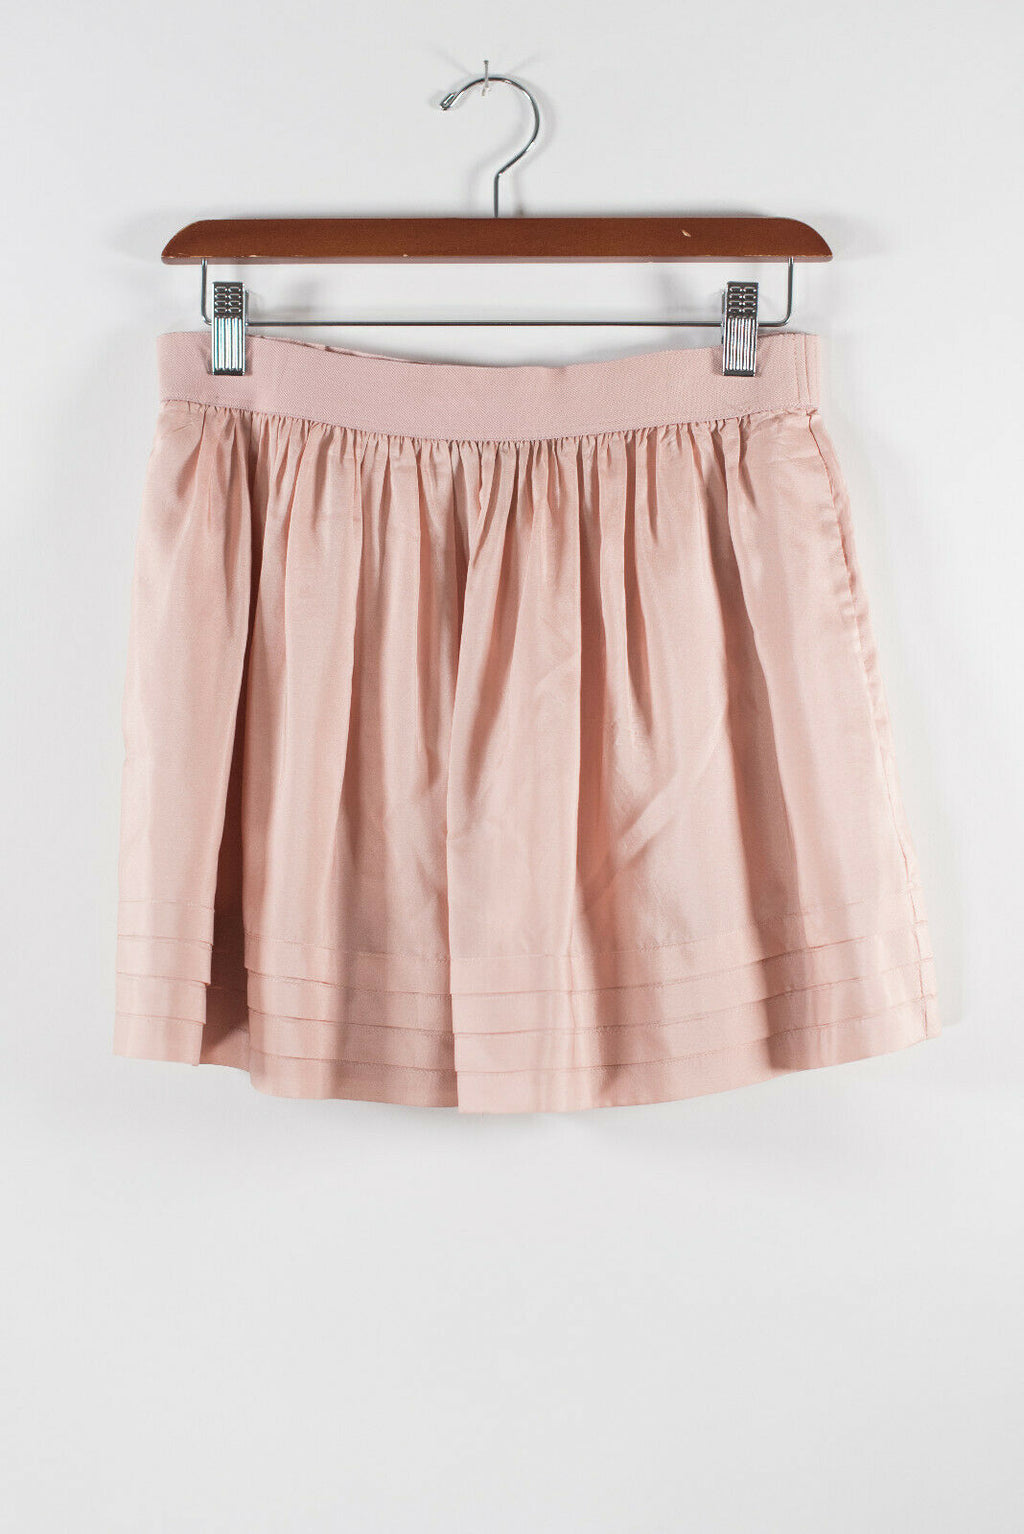 BCBG MaxAzria Womens XS Rose Pink Mini Skirt Elastic Waist Ruched Short Layered